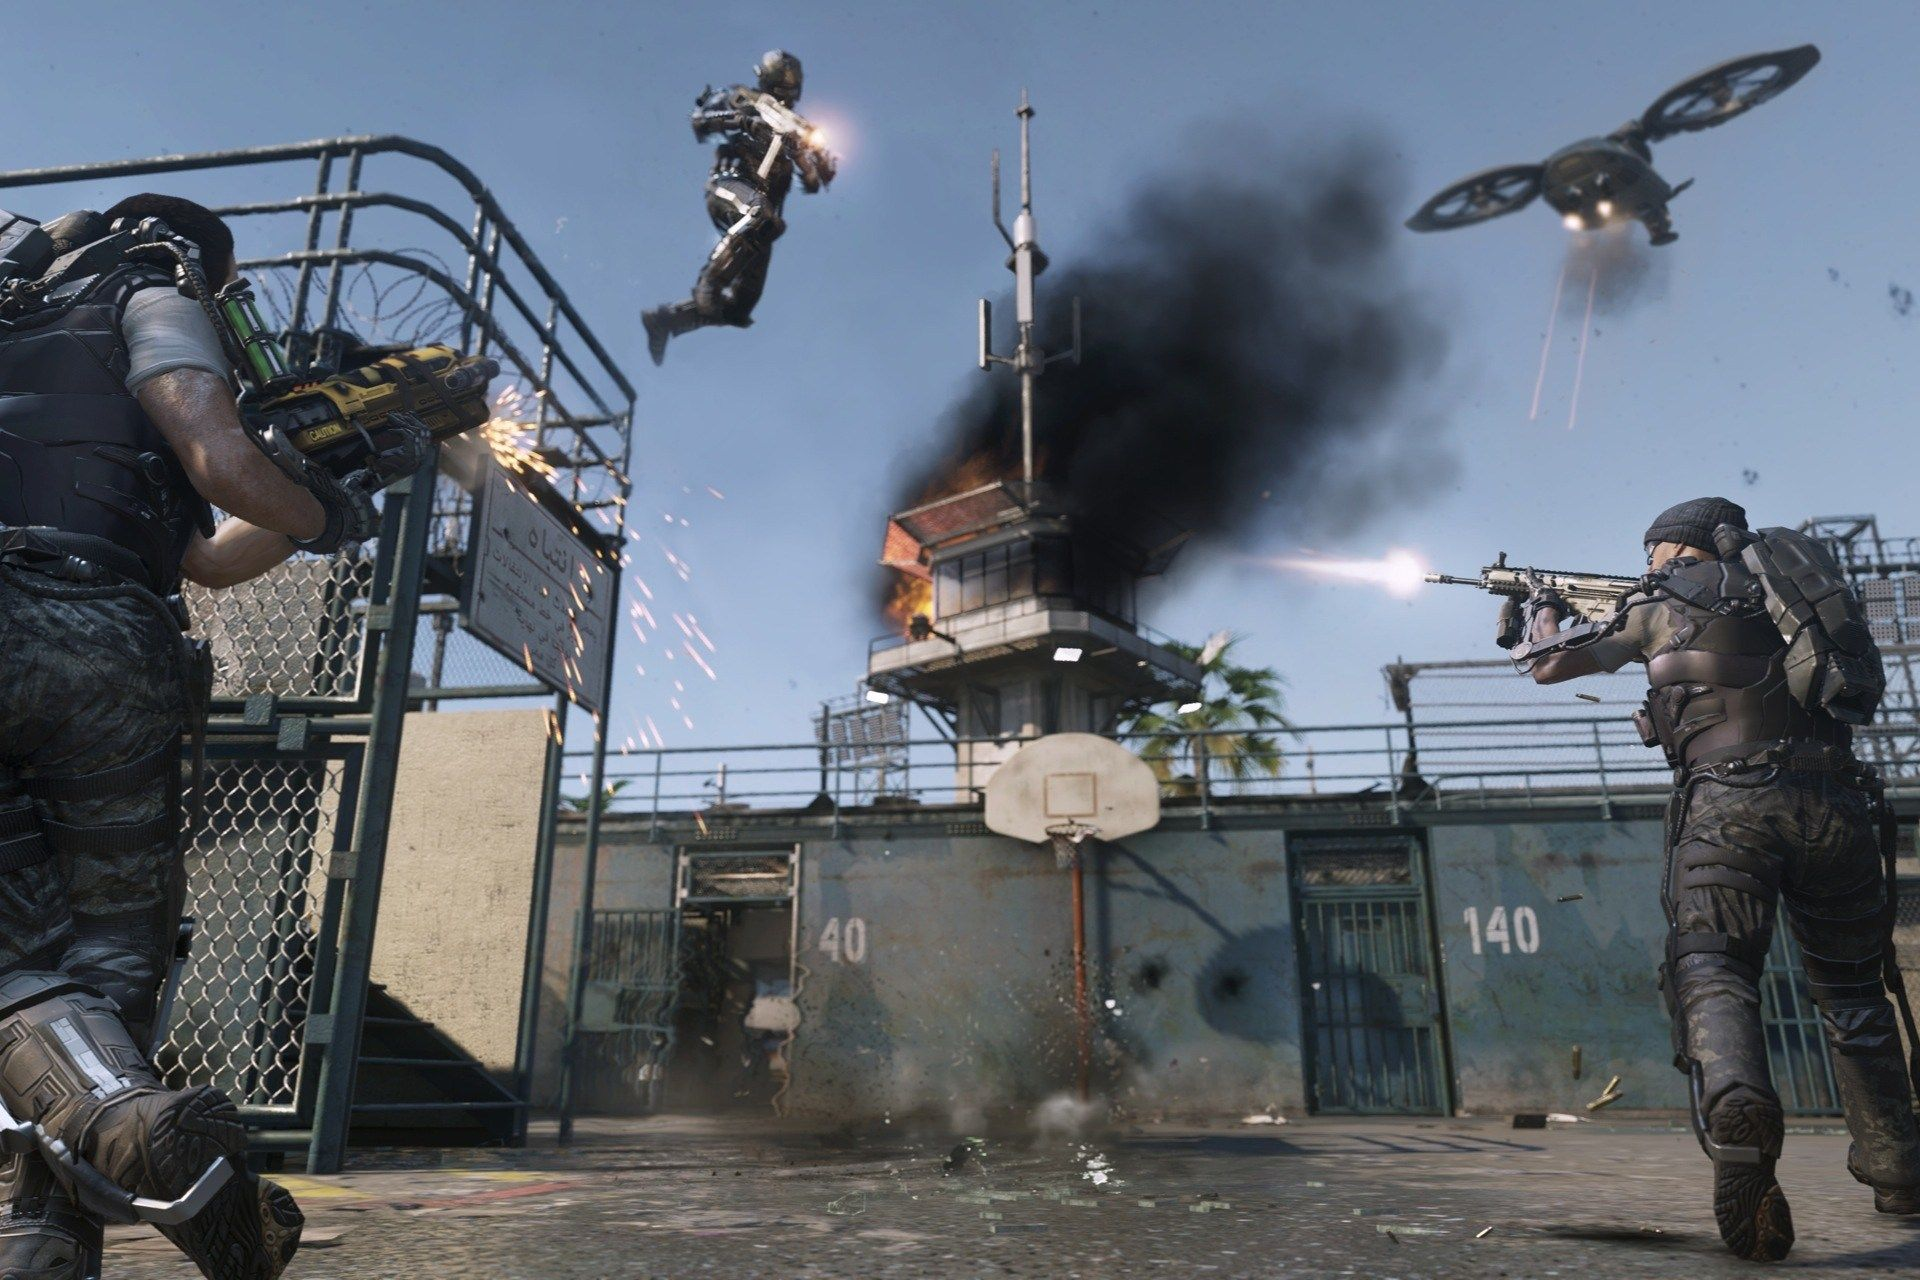 Wallpapers & Desktops Call Of Duty in 2020 Call of